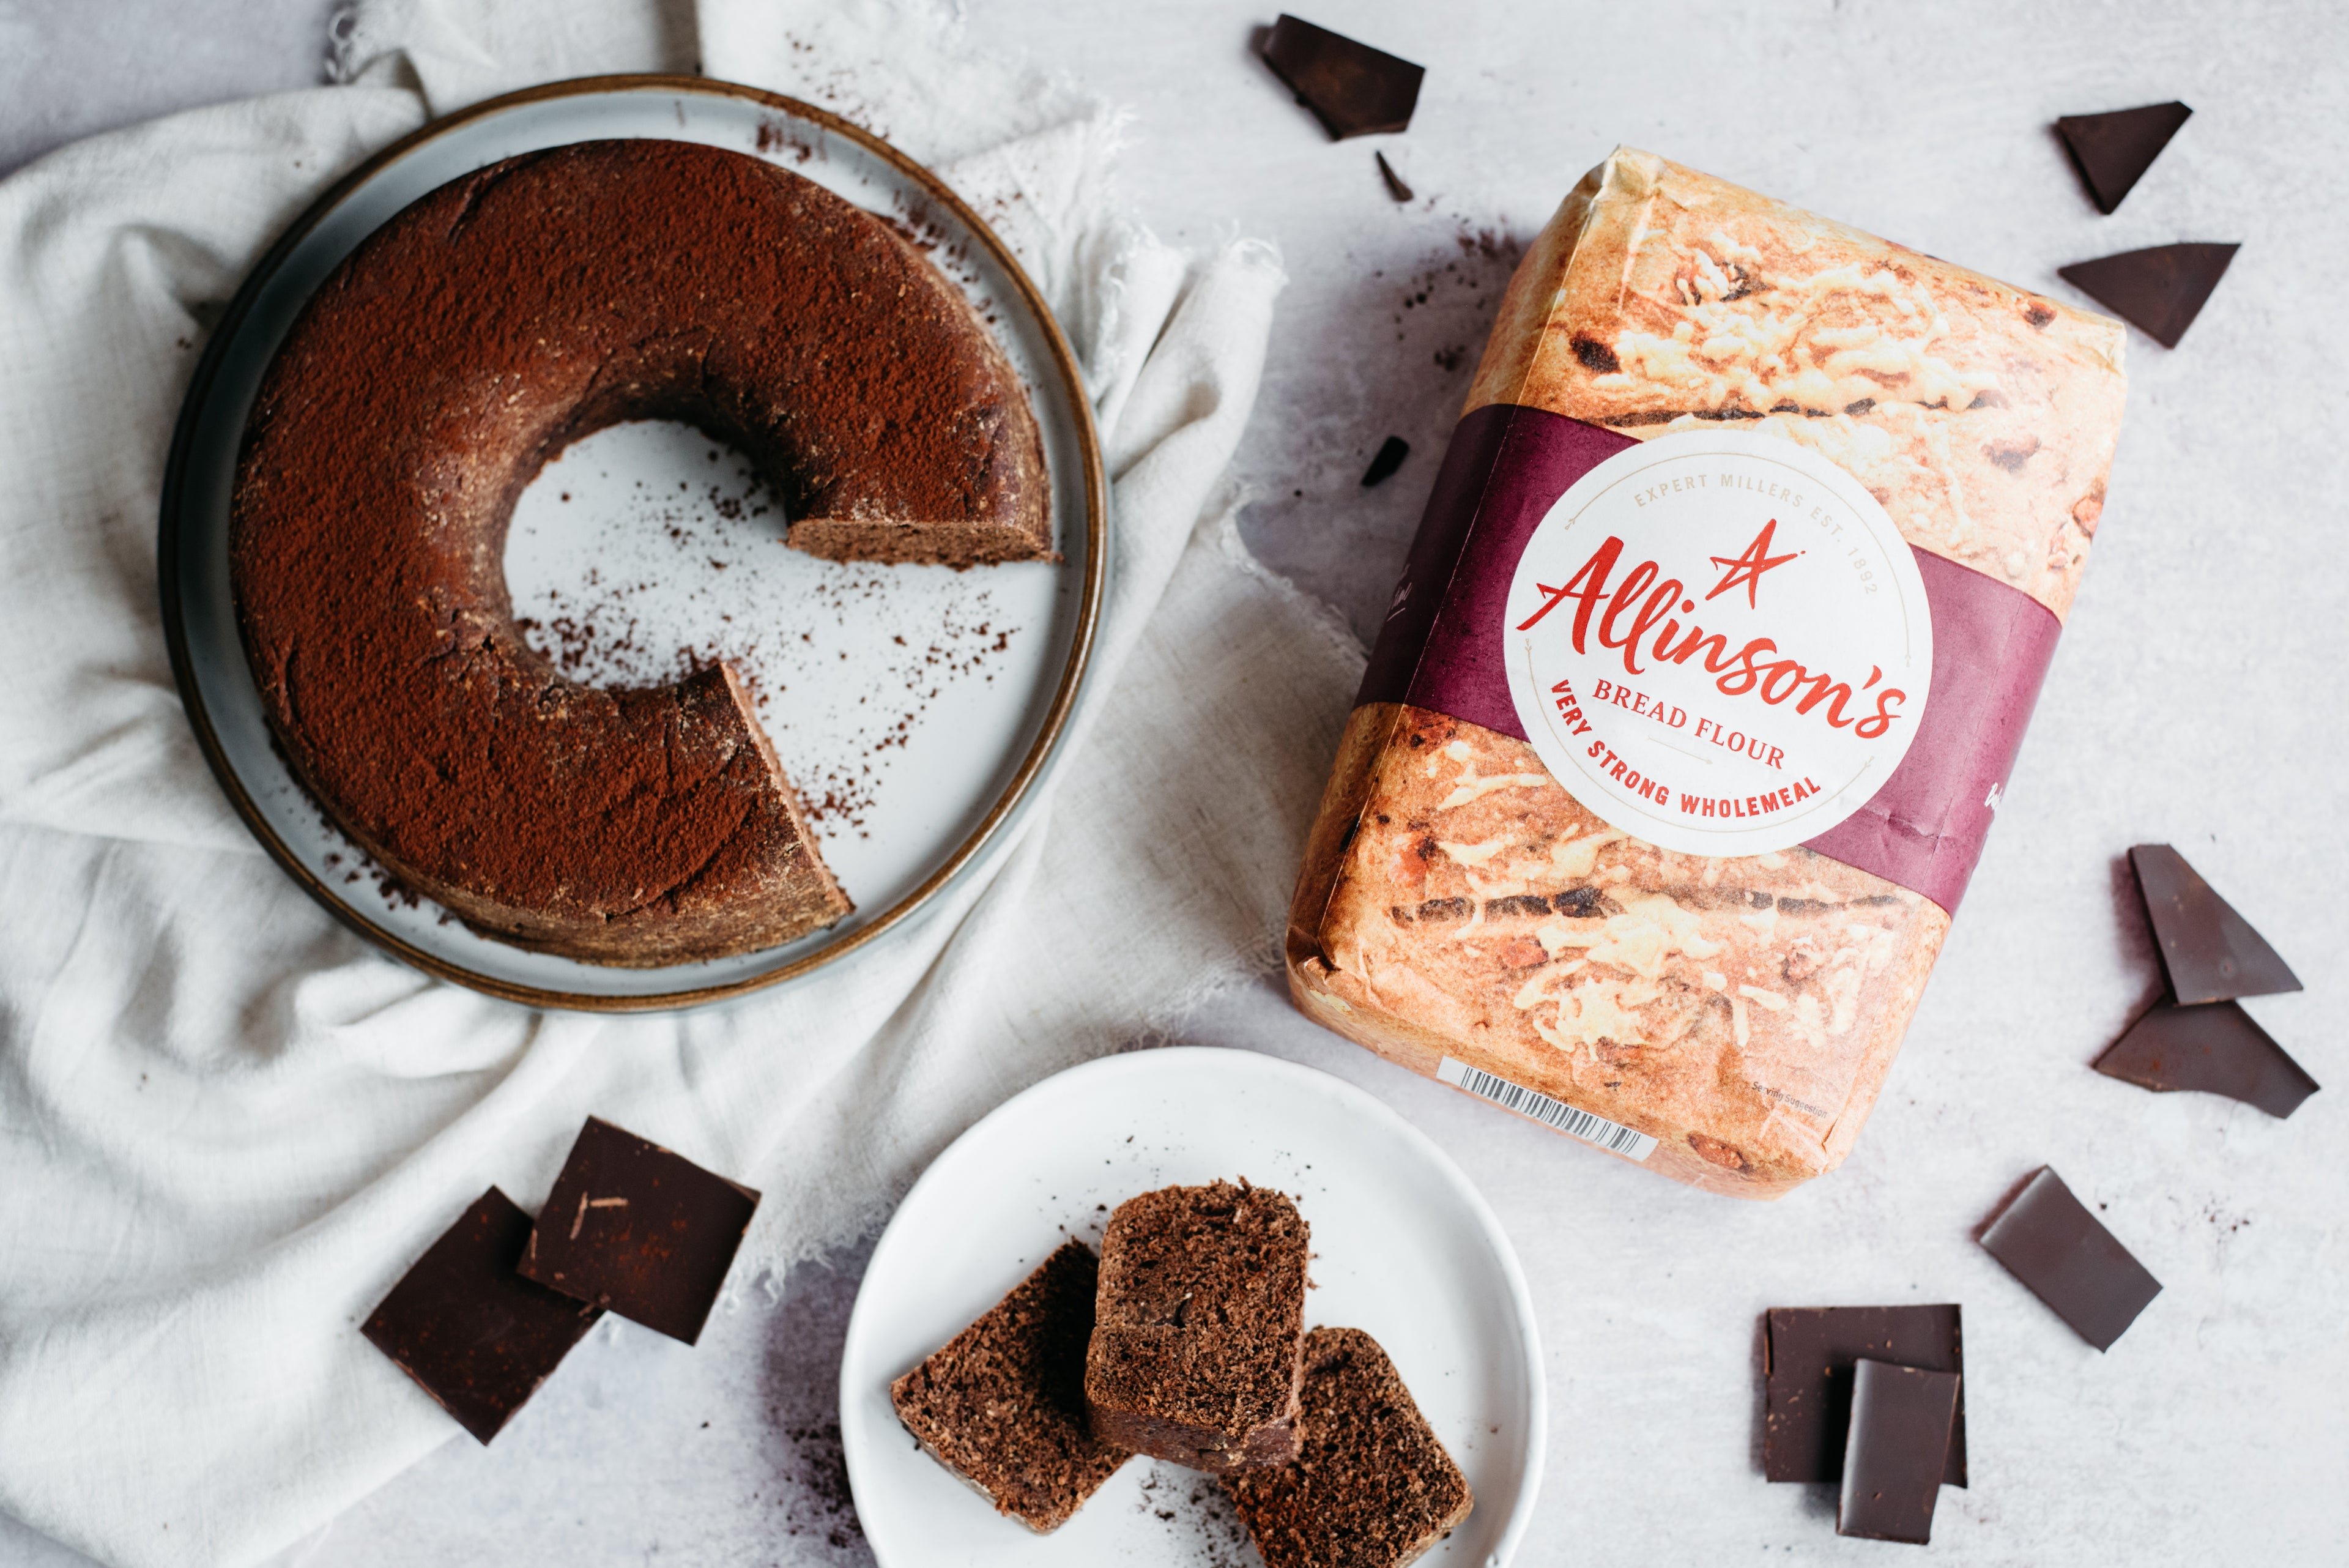 Top view of Chocolate Bread on a plate, with slices cut out and served on a plate, with dark chocolate pieces scattered around. Next to a bag of Allinson's very strong flour